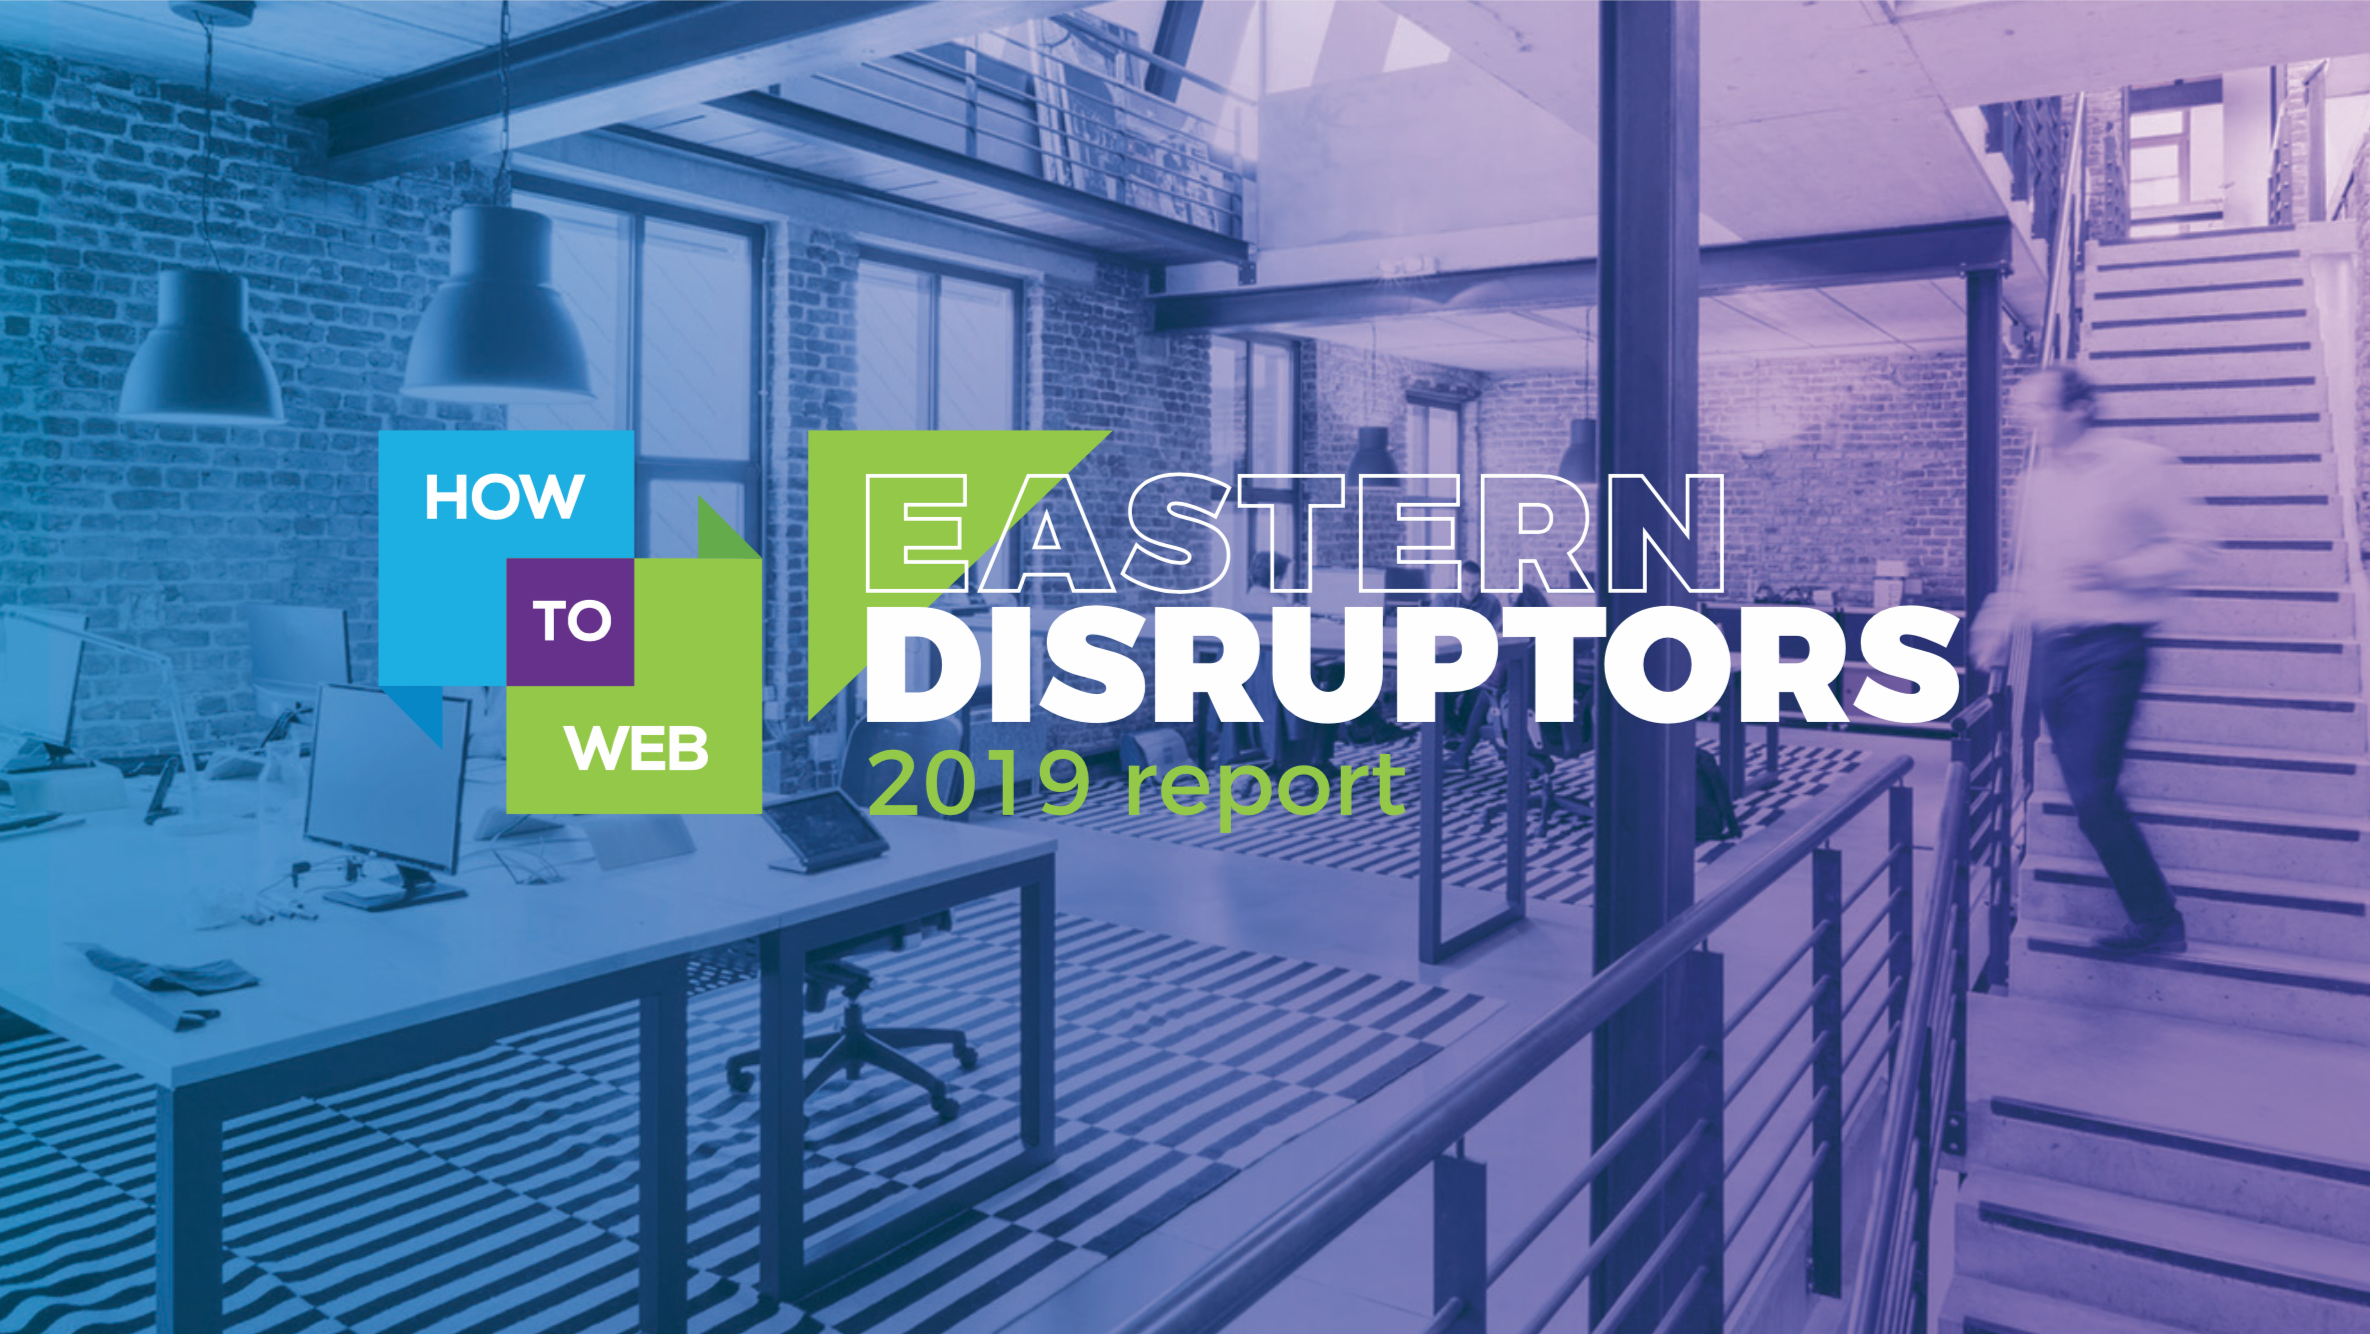 TOKINOMO WAS INCLUDED IN HOW TO WEB'S DISRUPTORS REPORT